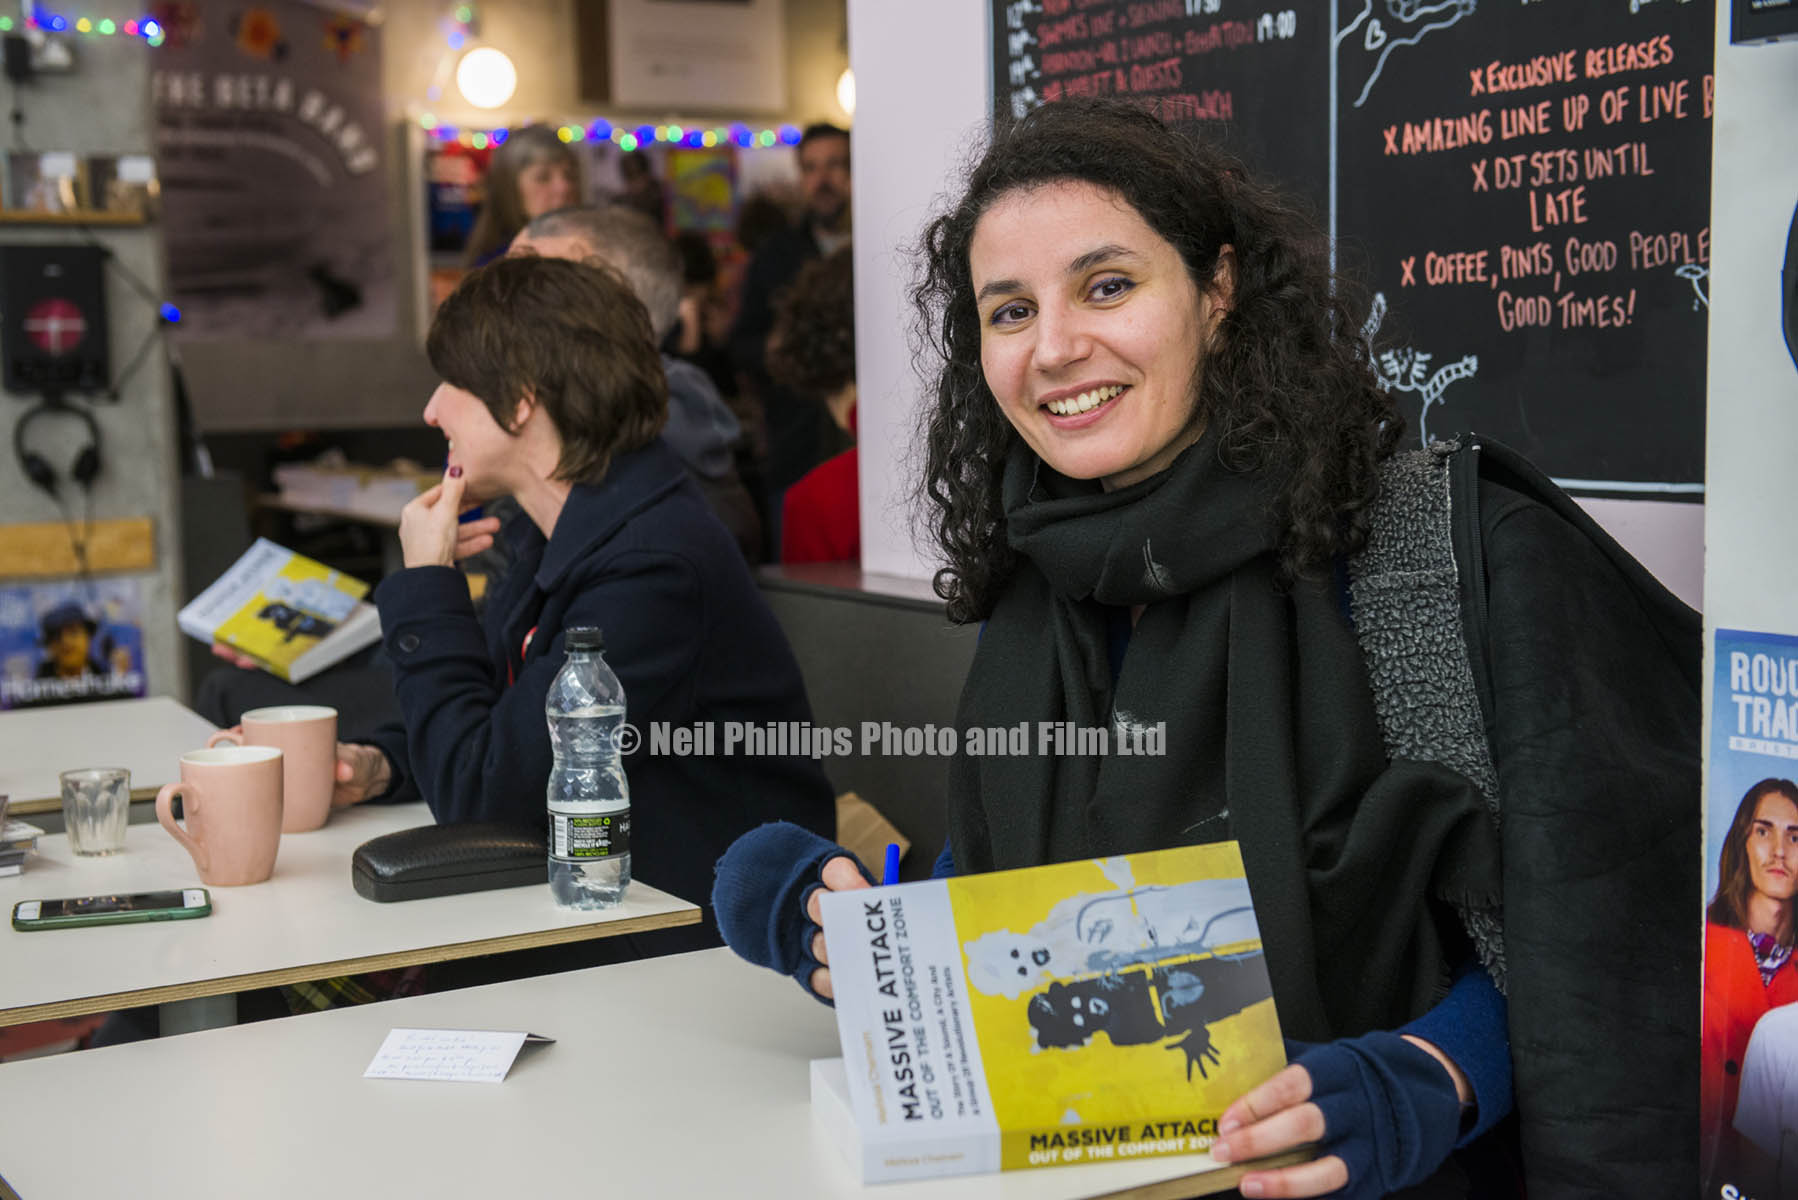 Melissa Chemam, author who wrote the Massive Attack Book,  Out of the Comfort Zone